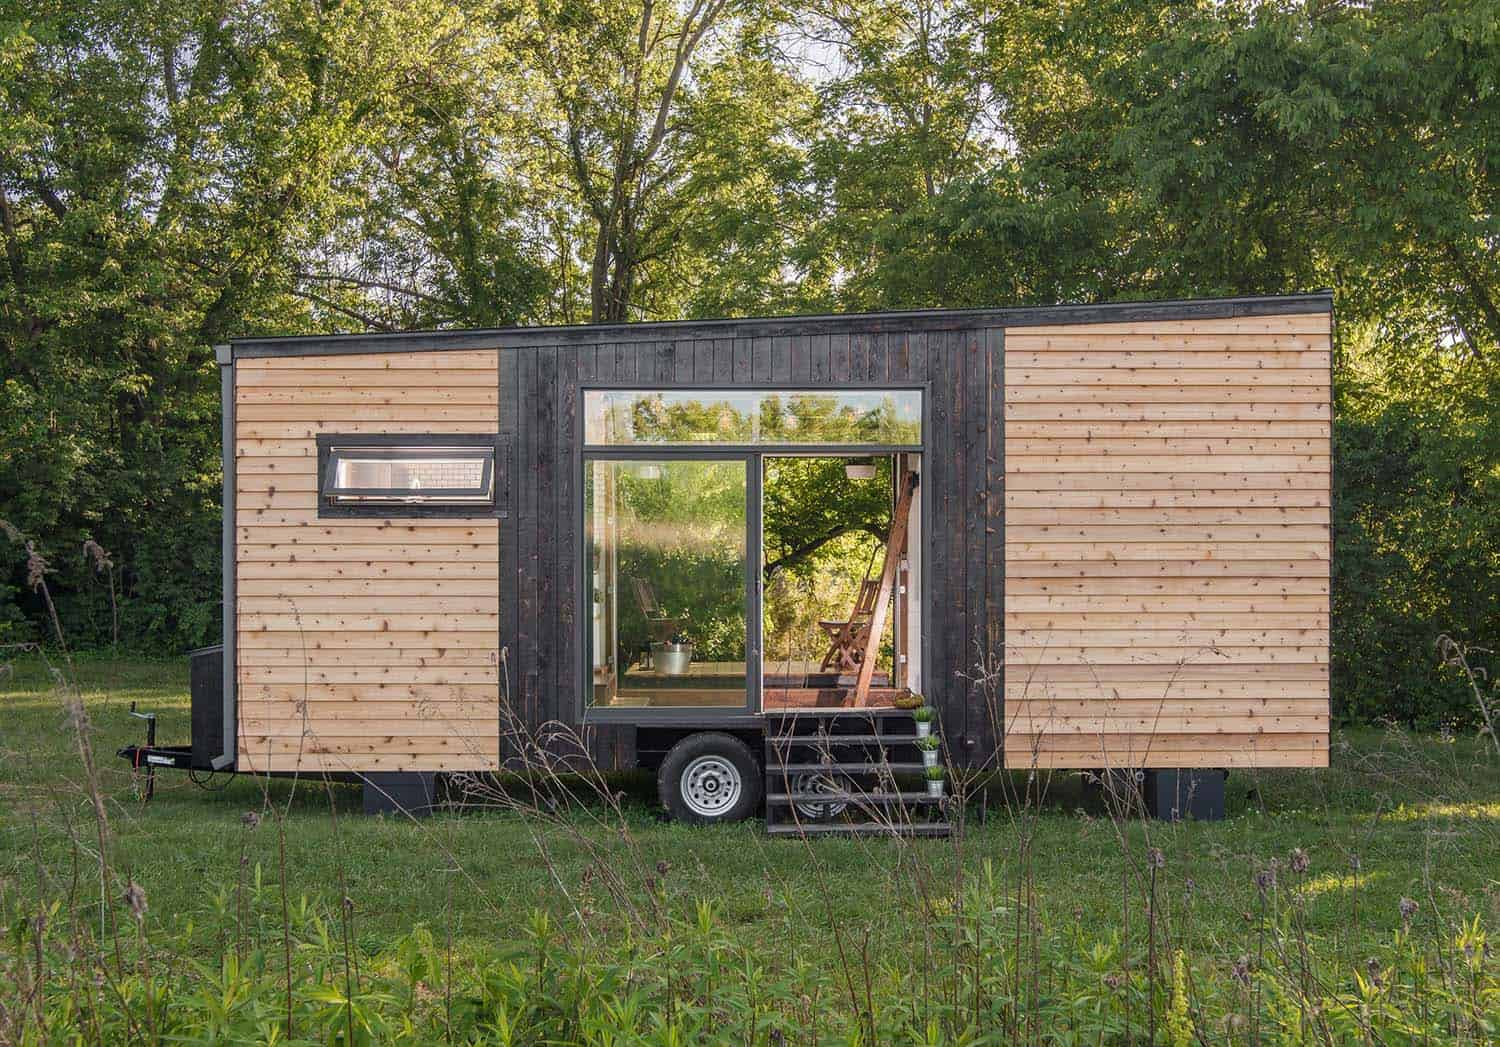 Innovative tiny house showcases luxury details on a budget on tiny house blueprints, tiny house 3d model, tiny house sketch up, tiny house fad,